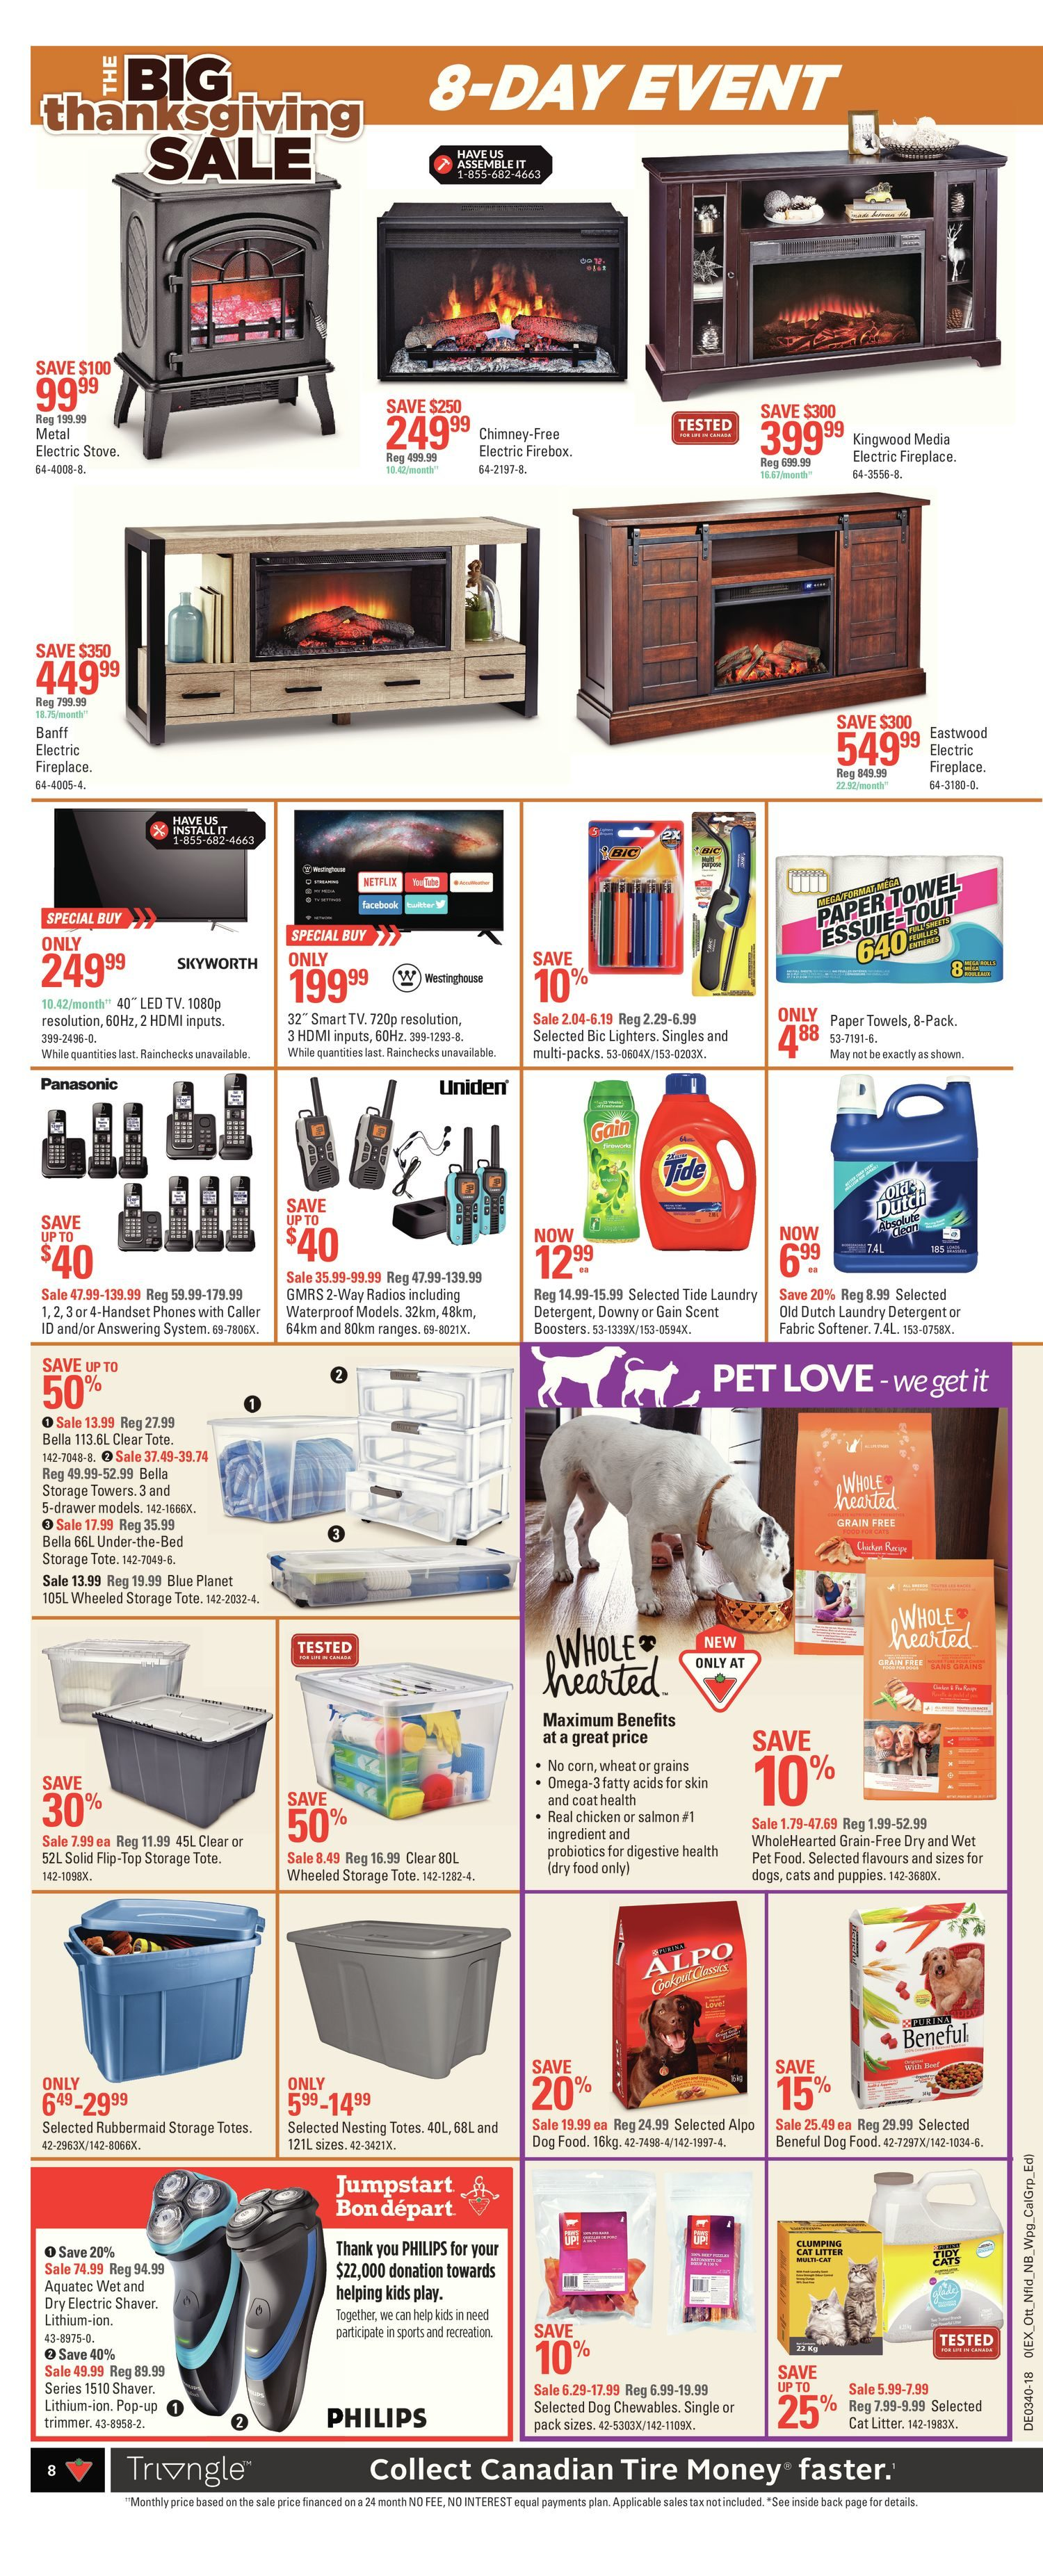 Canadian Tire Weekly Flyer 8 Day Event The Big Thanksgiving Sale Wooden Clock Bamboo 1293 Red Lightblue Lightgreen Light Sep 27 Oct 4